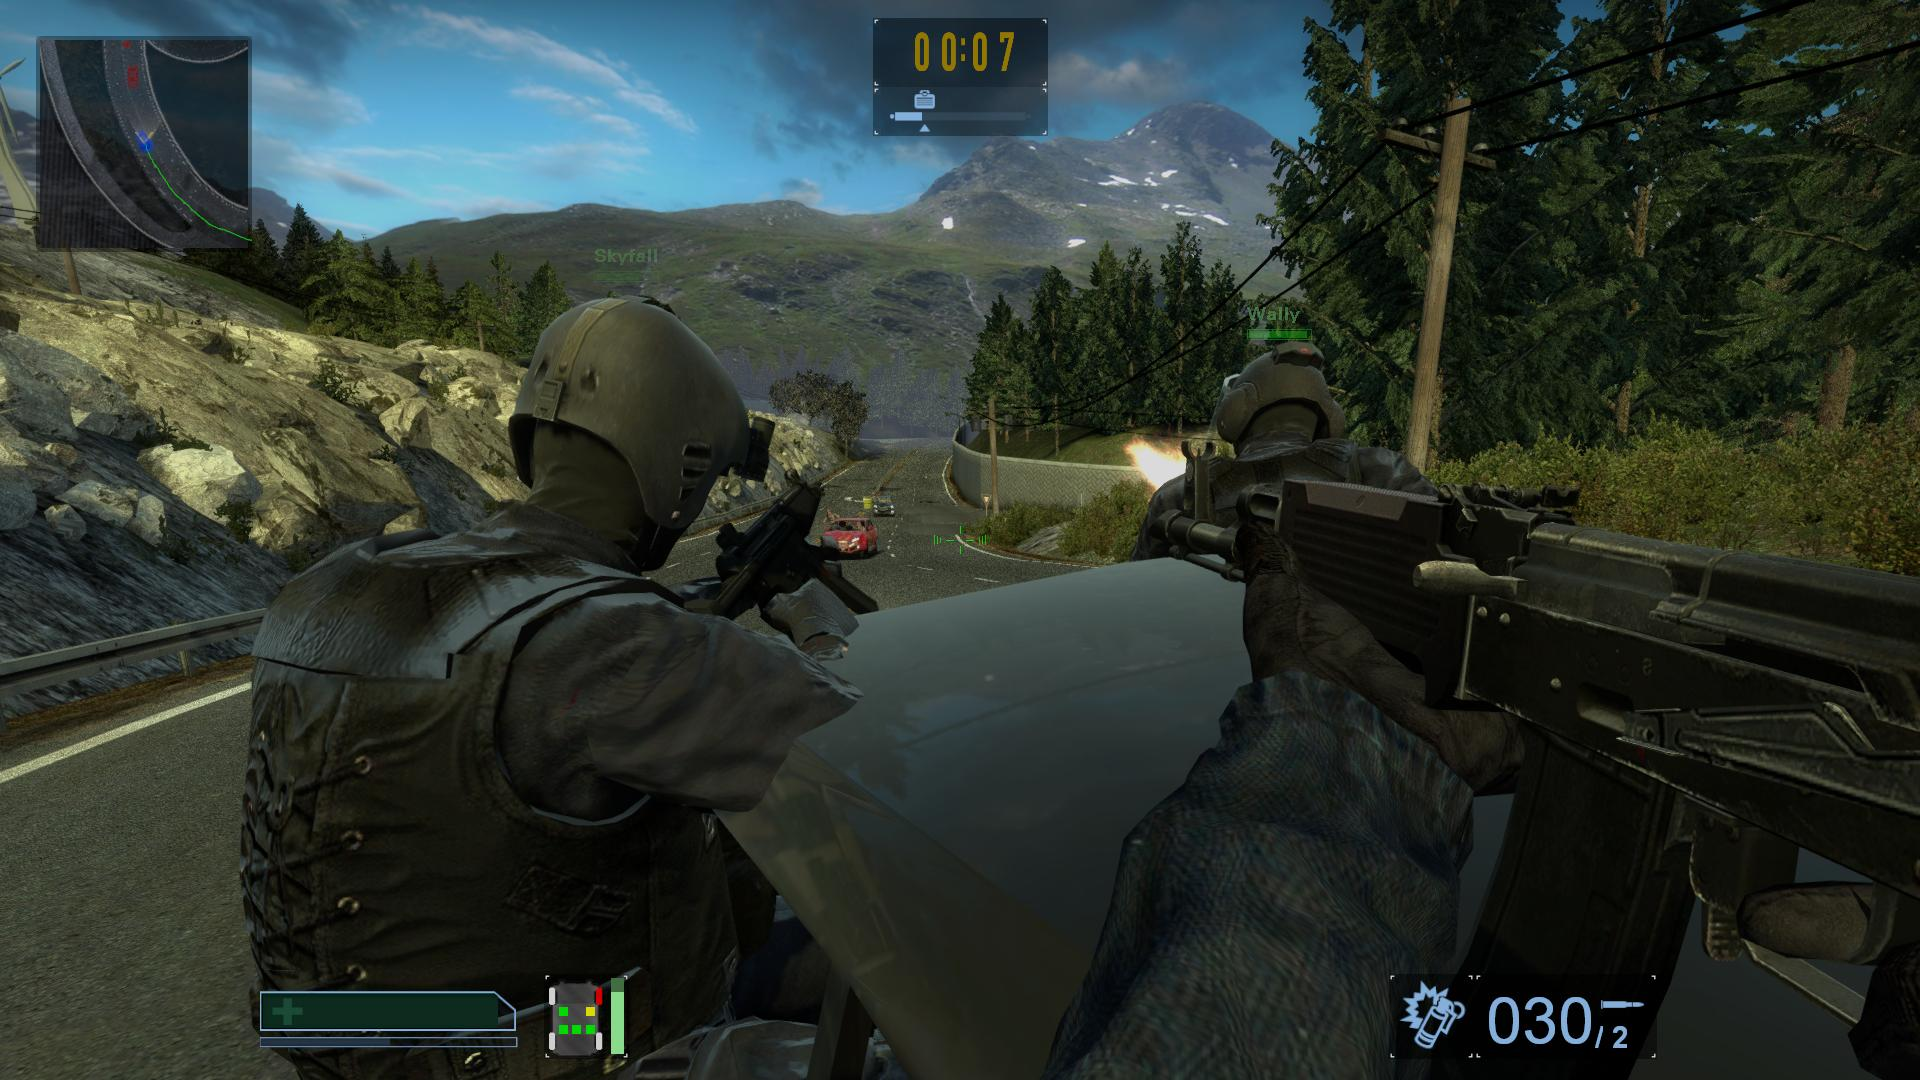 TACTICAL-INTERVENTION-Screenshot-Infamous-Highway-Mission-3.13.13-16.jpg